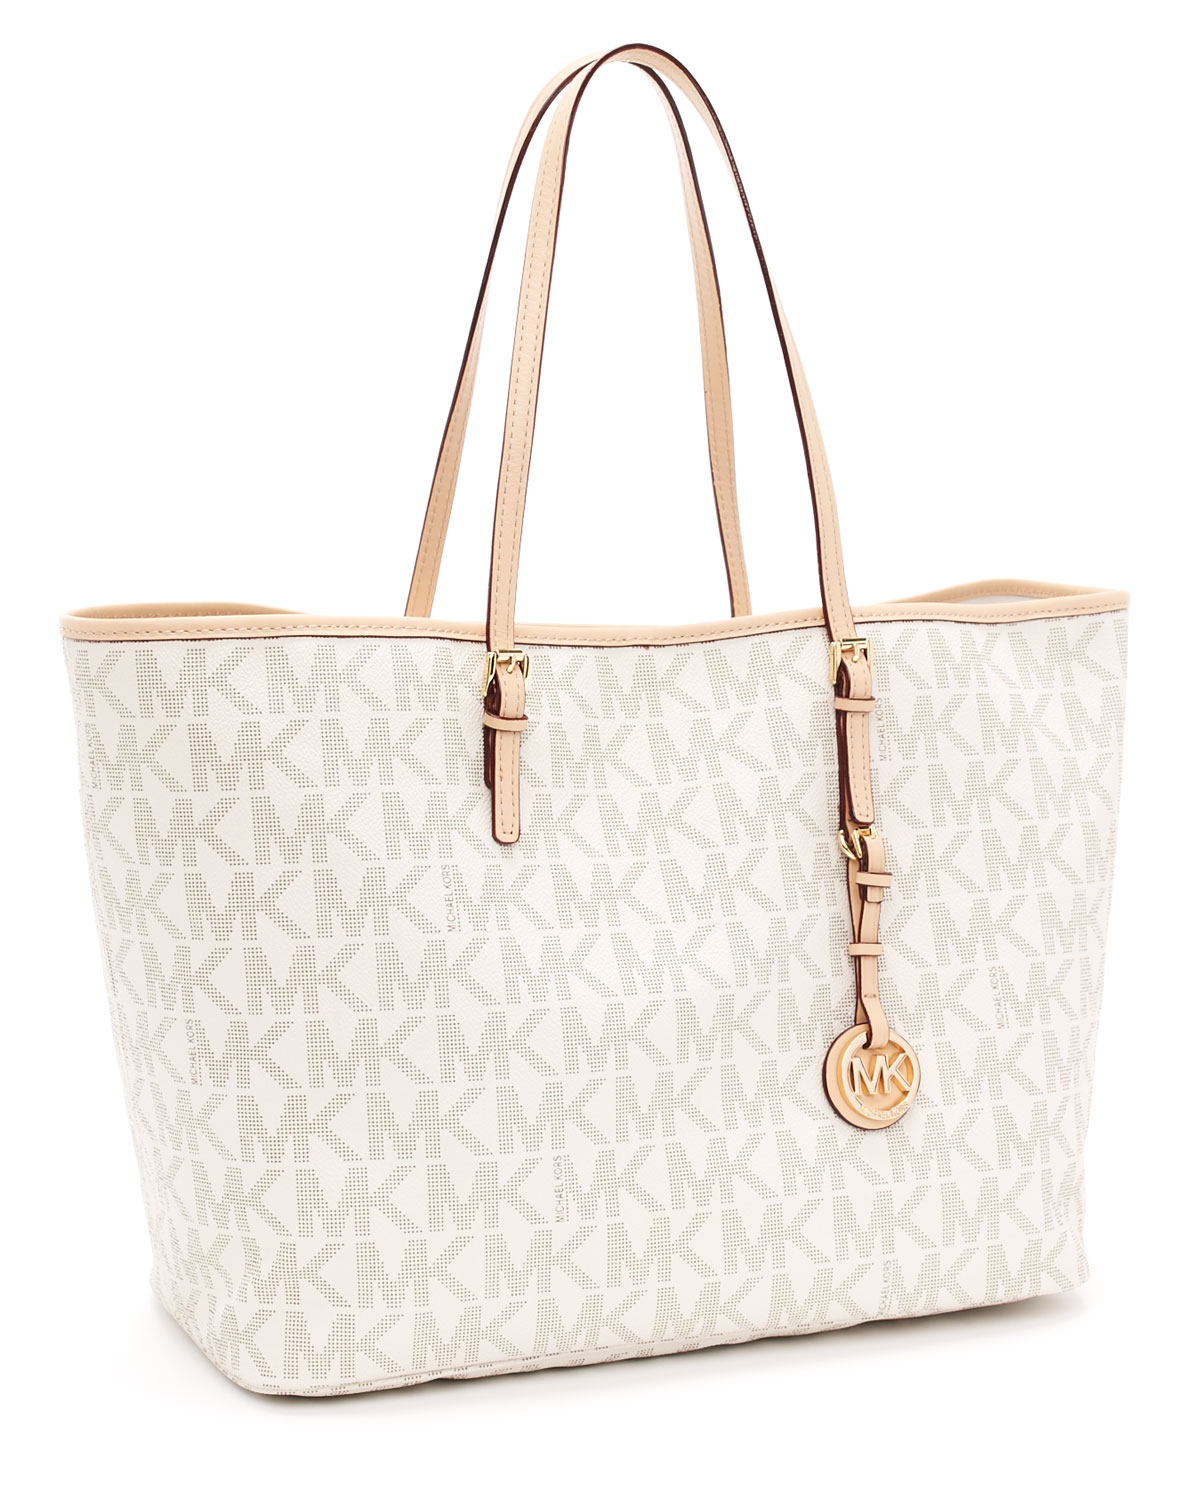 5051b1b12ee8d Lyst - Michael Kors Medium Jet Set Logo Travel Tote